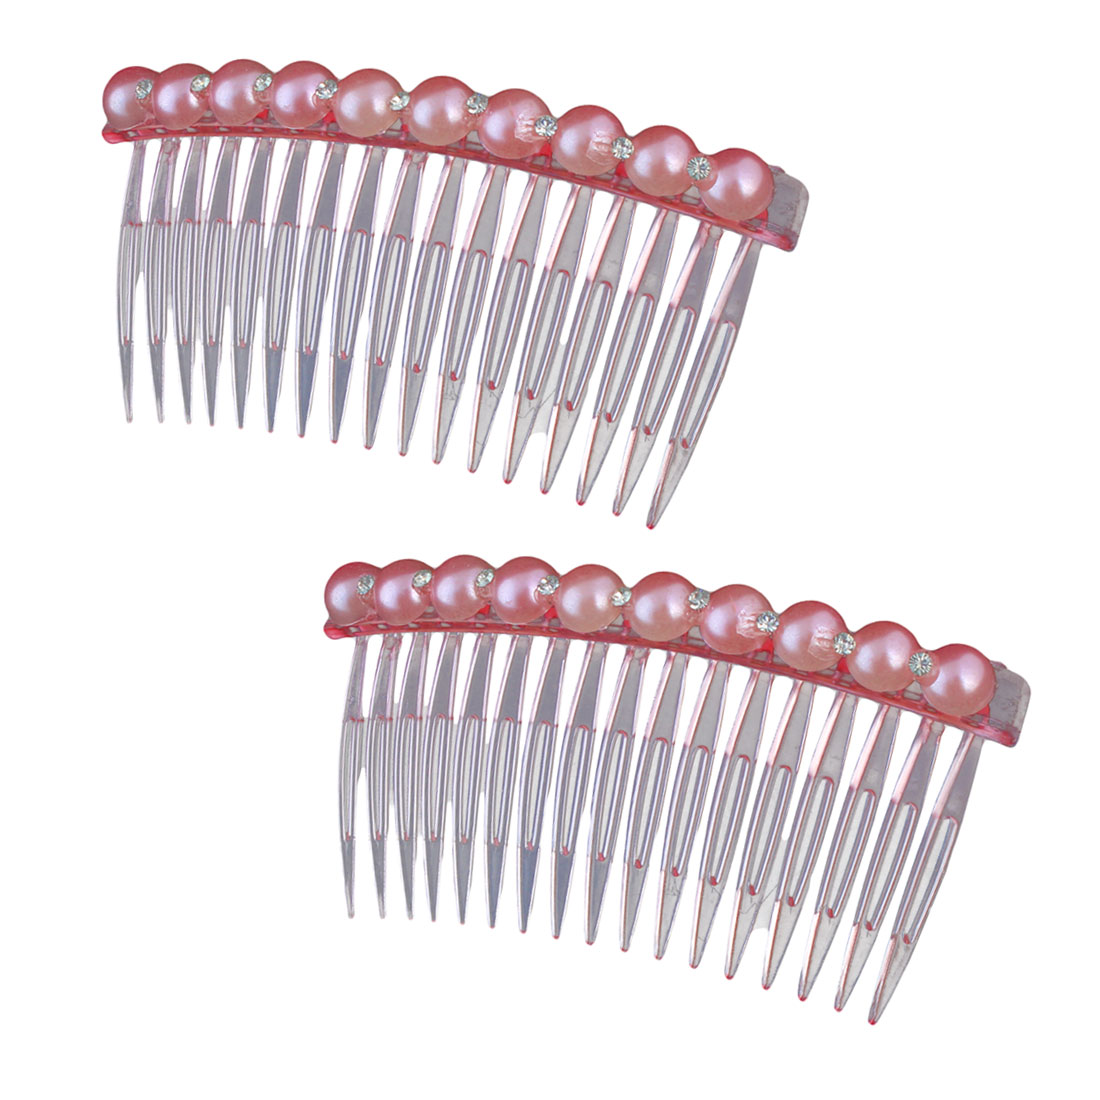 Girl Plastic Imitation Pearl Rhinestone Decor 17 Teeth Hair Clip Comb Pink 2pcs